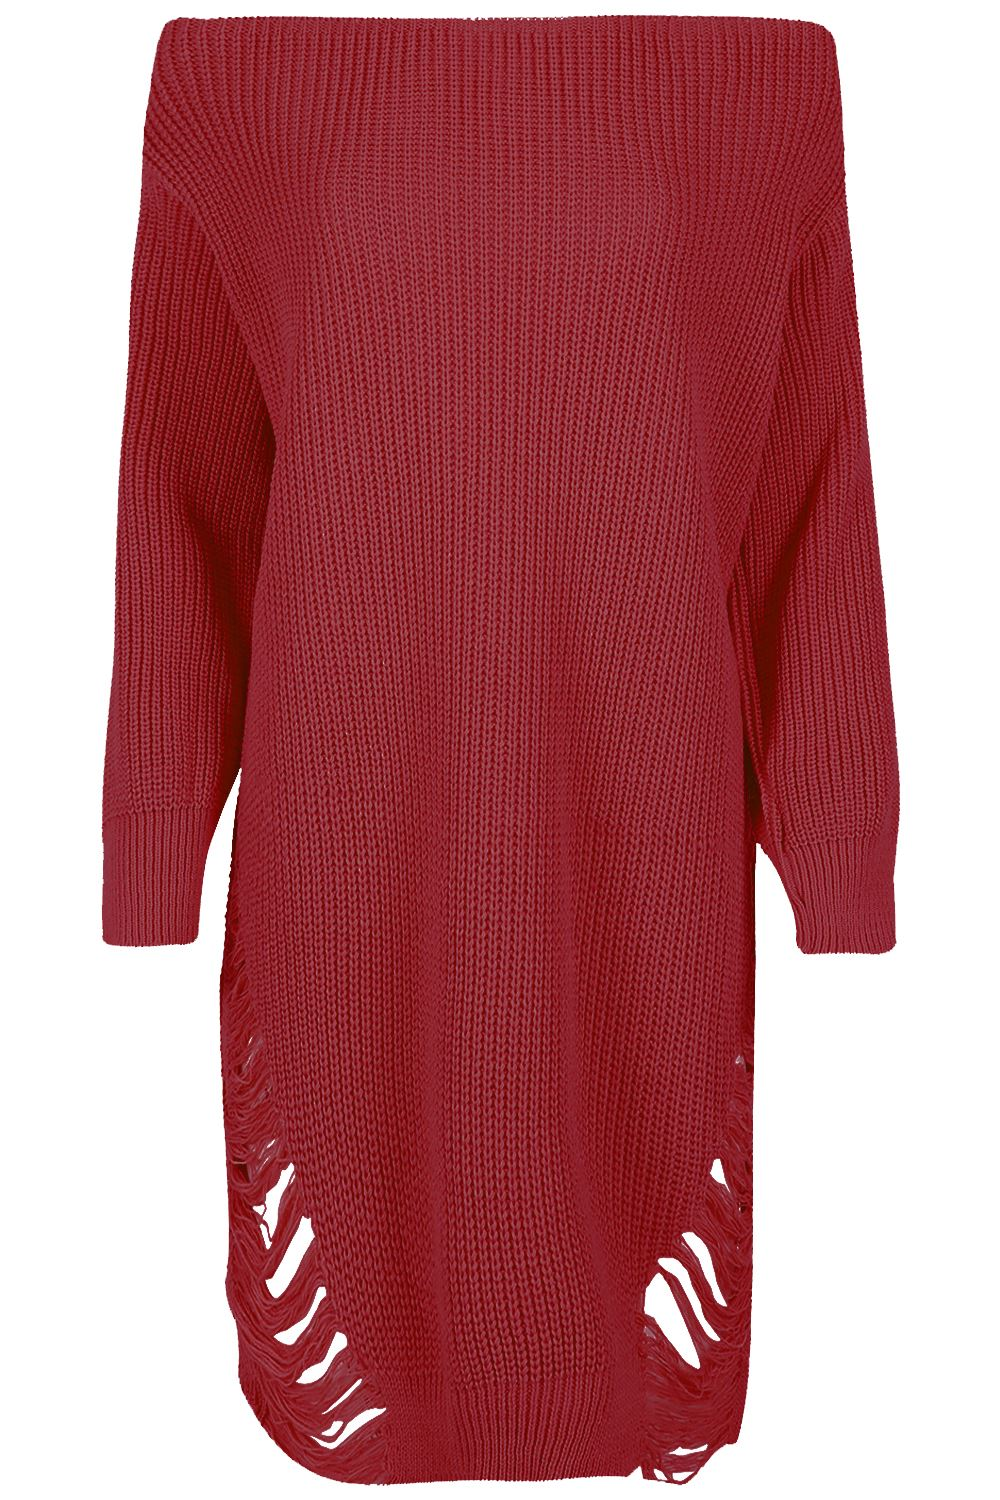 Womens-Oversized-Jumper-Ladies-Dress-Long-Sleeve-Chunky-Knitted-Long-Sweater-Top thumbnail 24